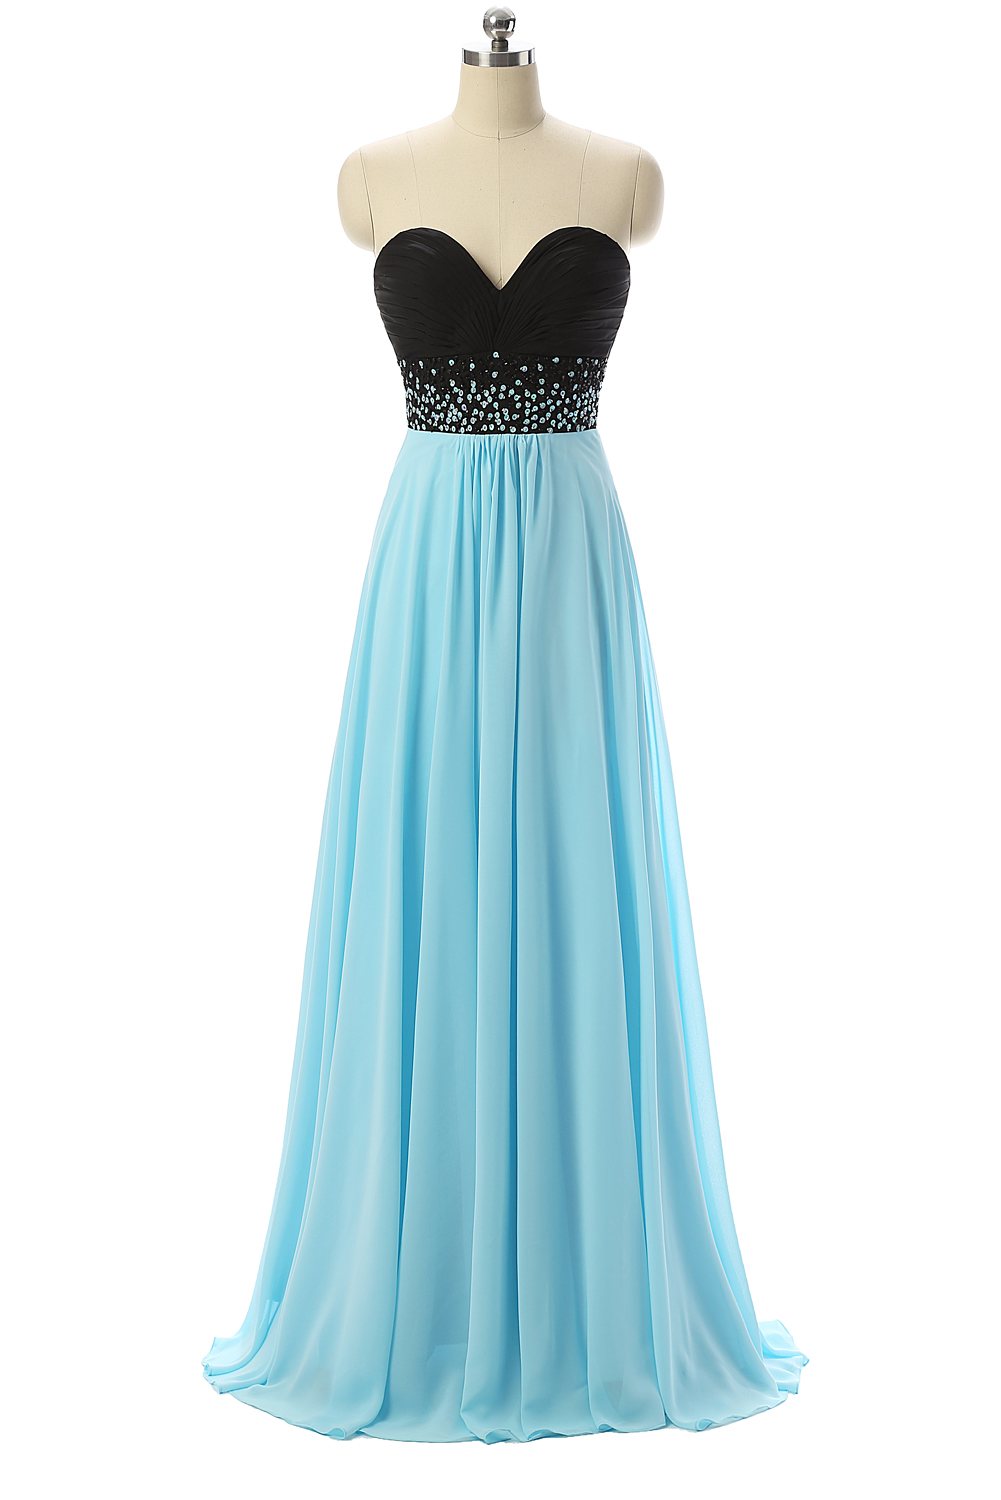 Black And Blue Prom Dresses,Sweetheart Prom Dresses,Formal Evening ...